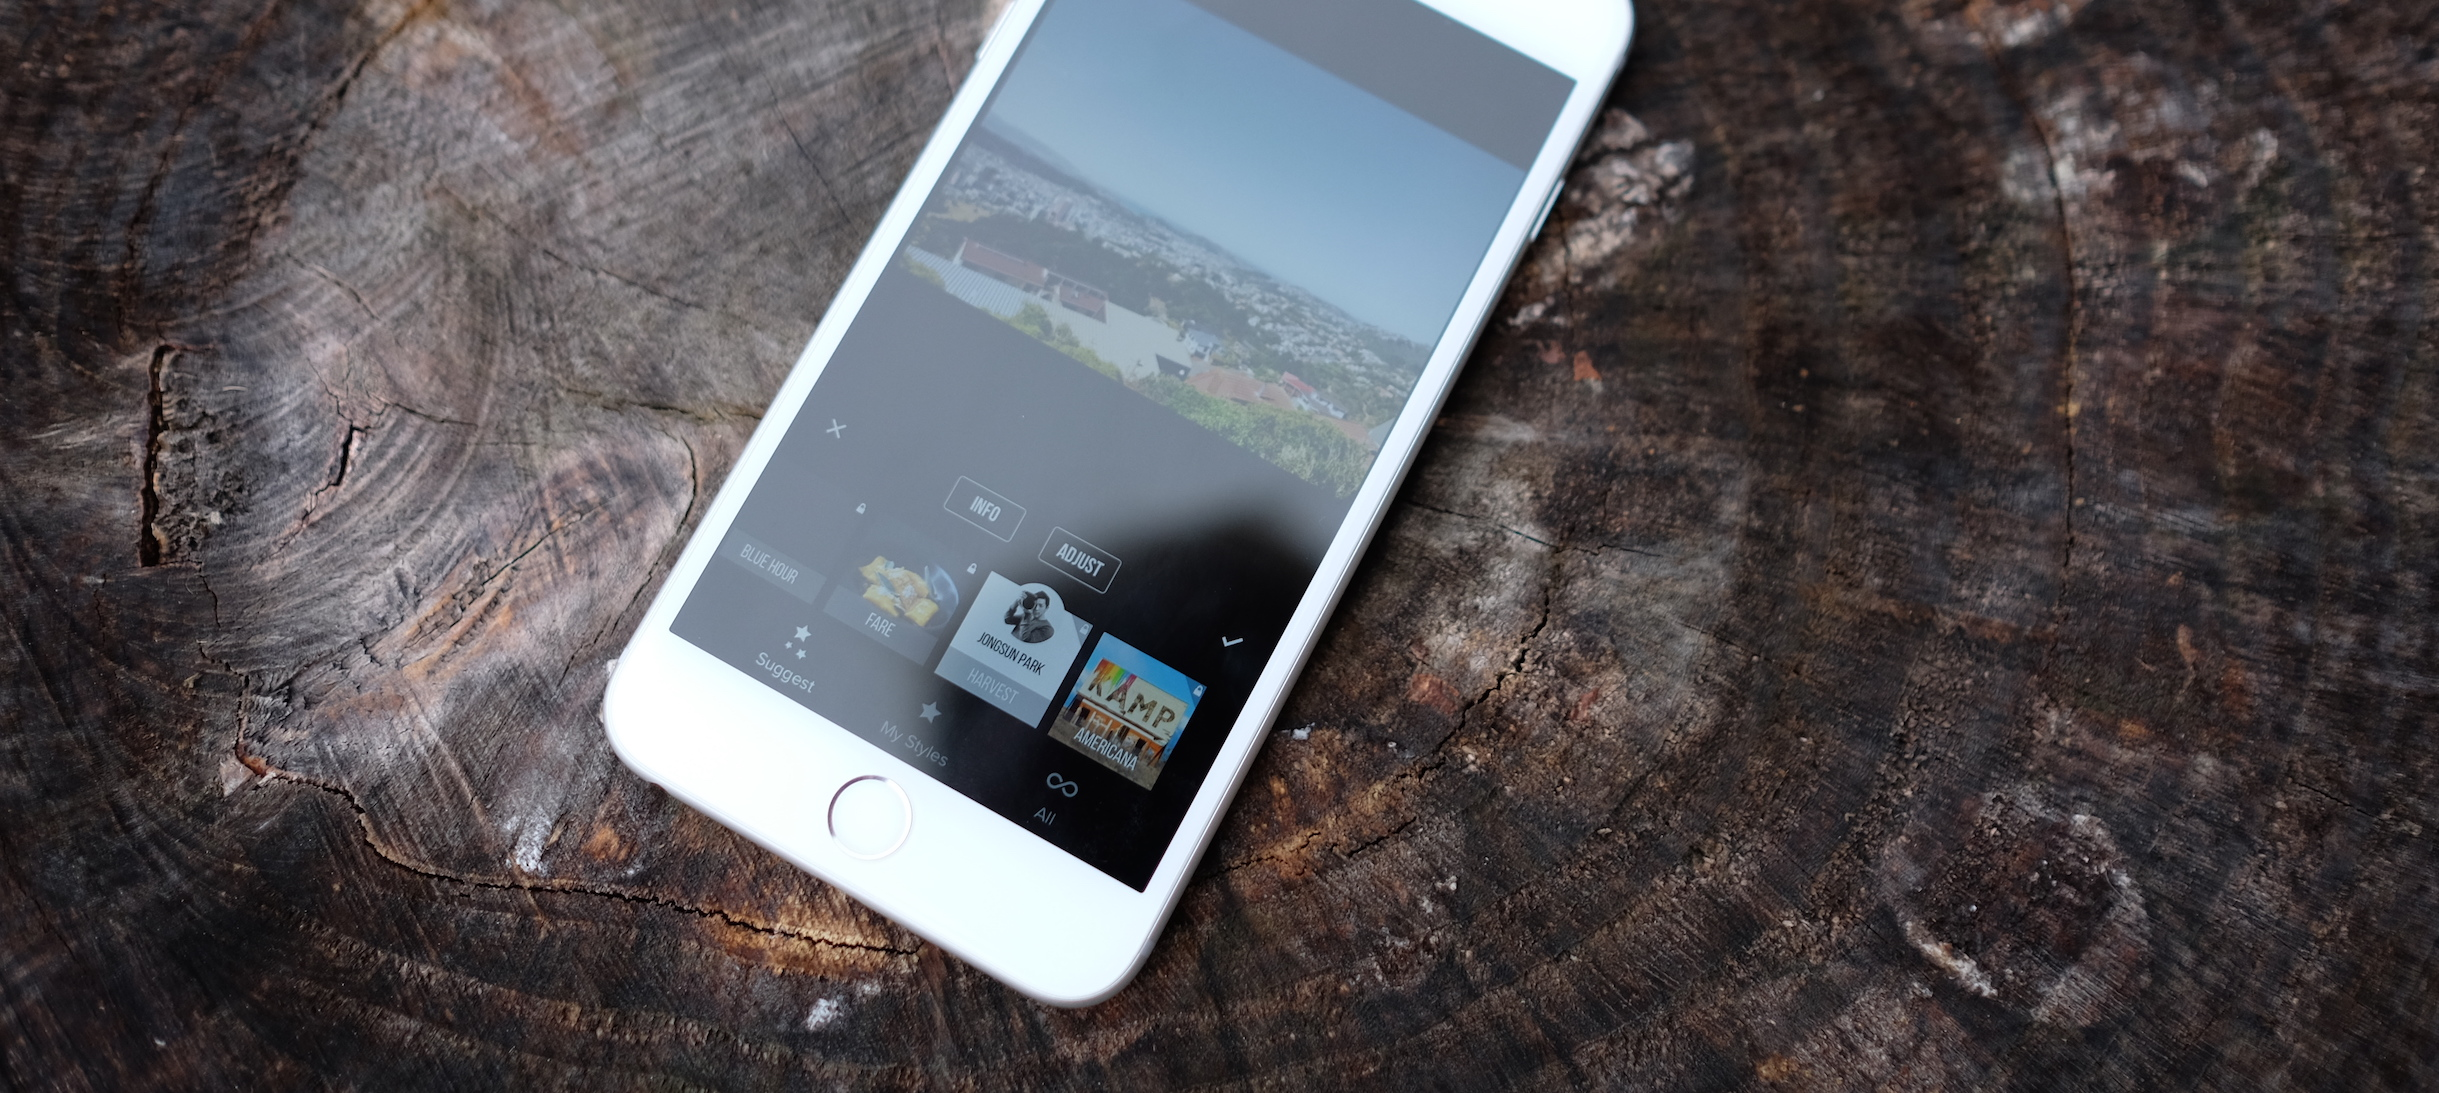 Priime For iPhone Intelligently Suggests Which Filters To Use